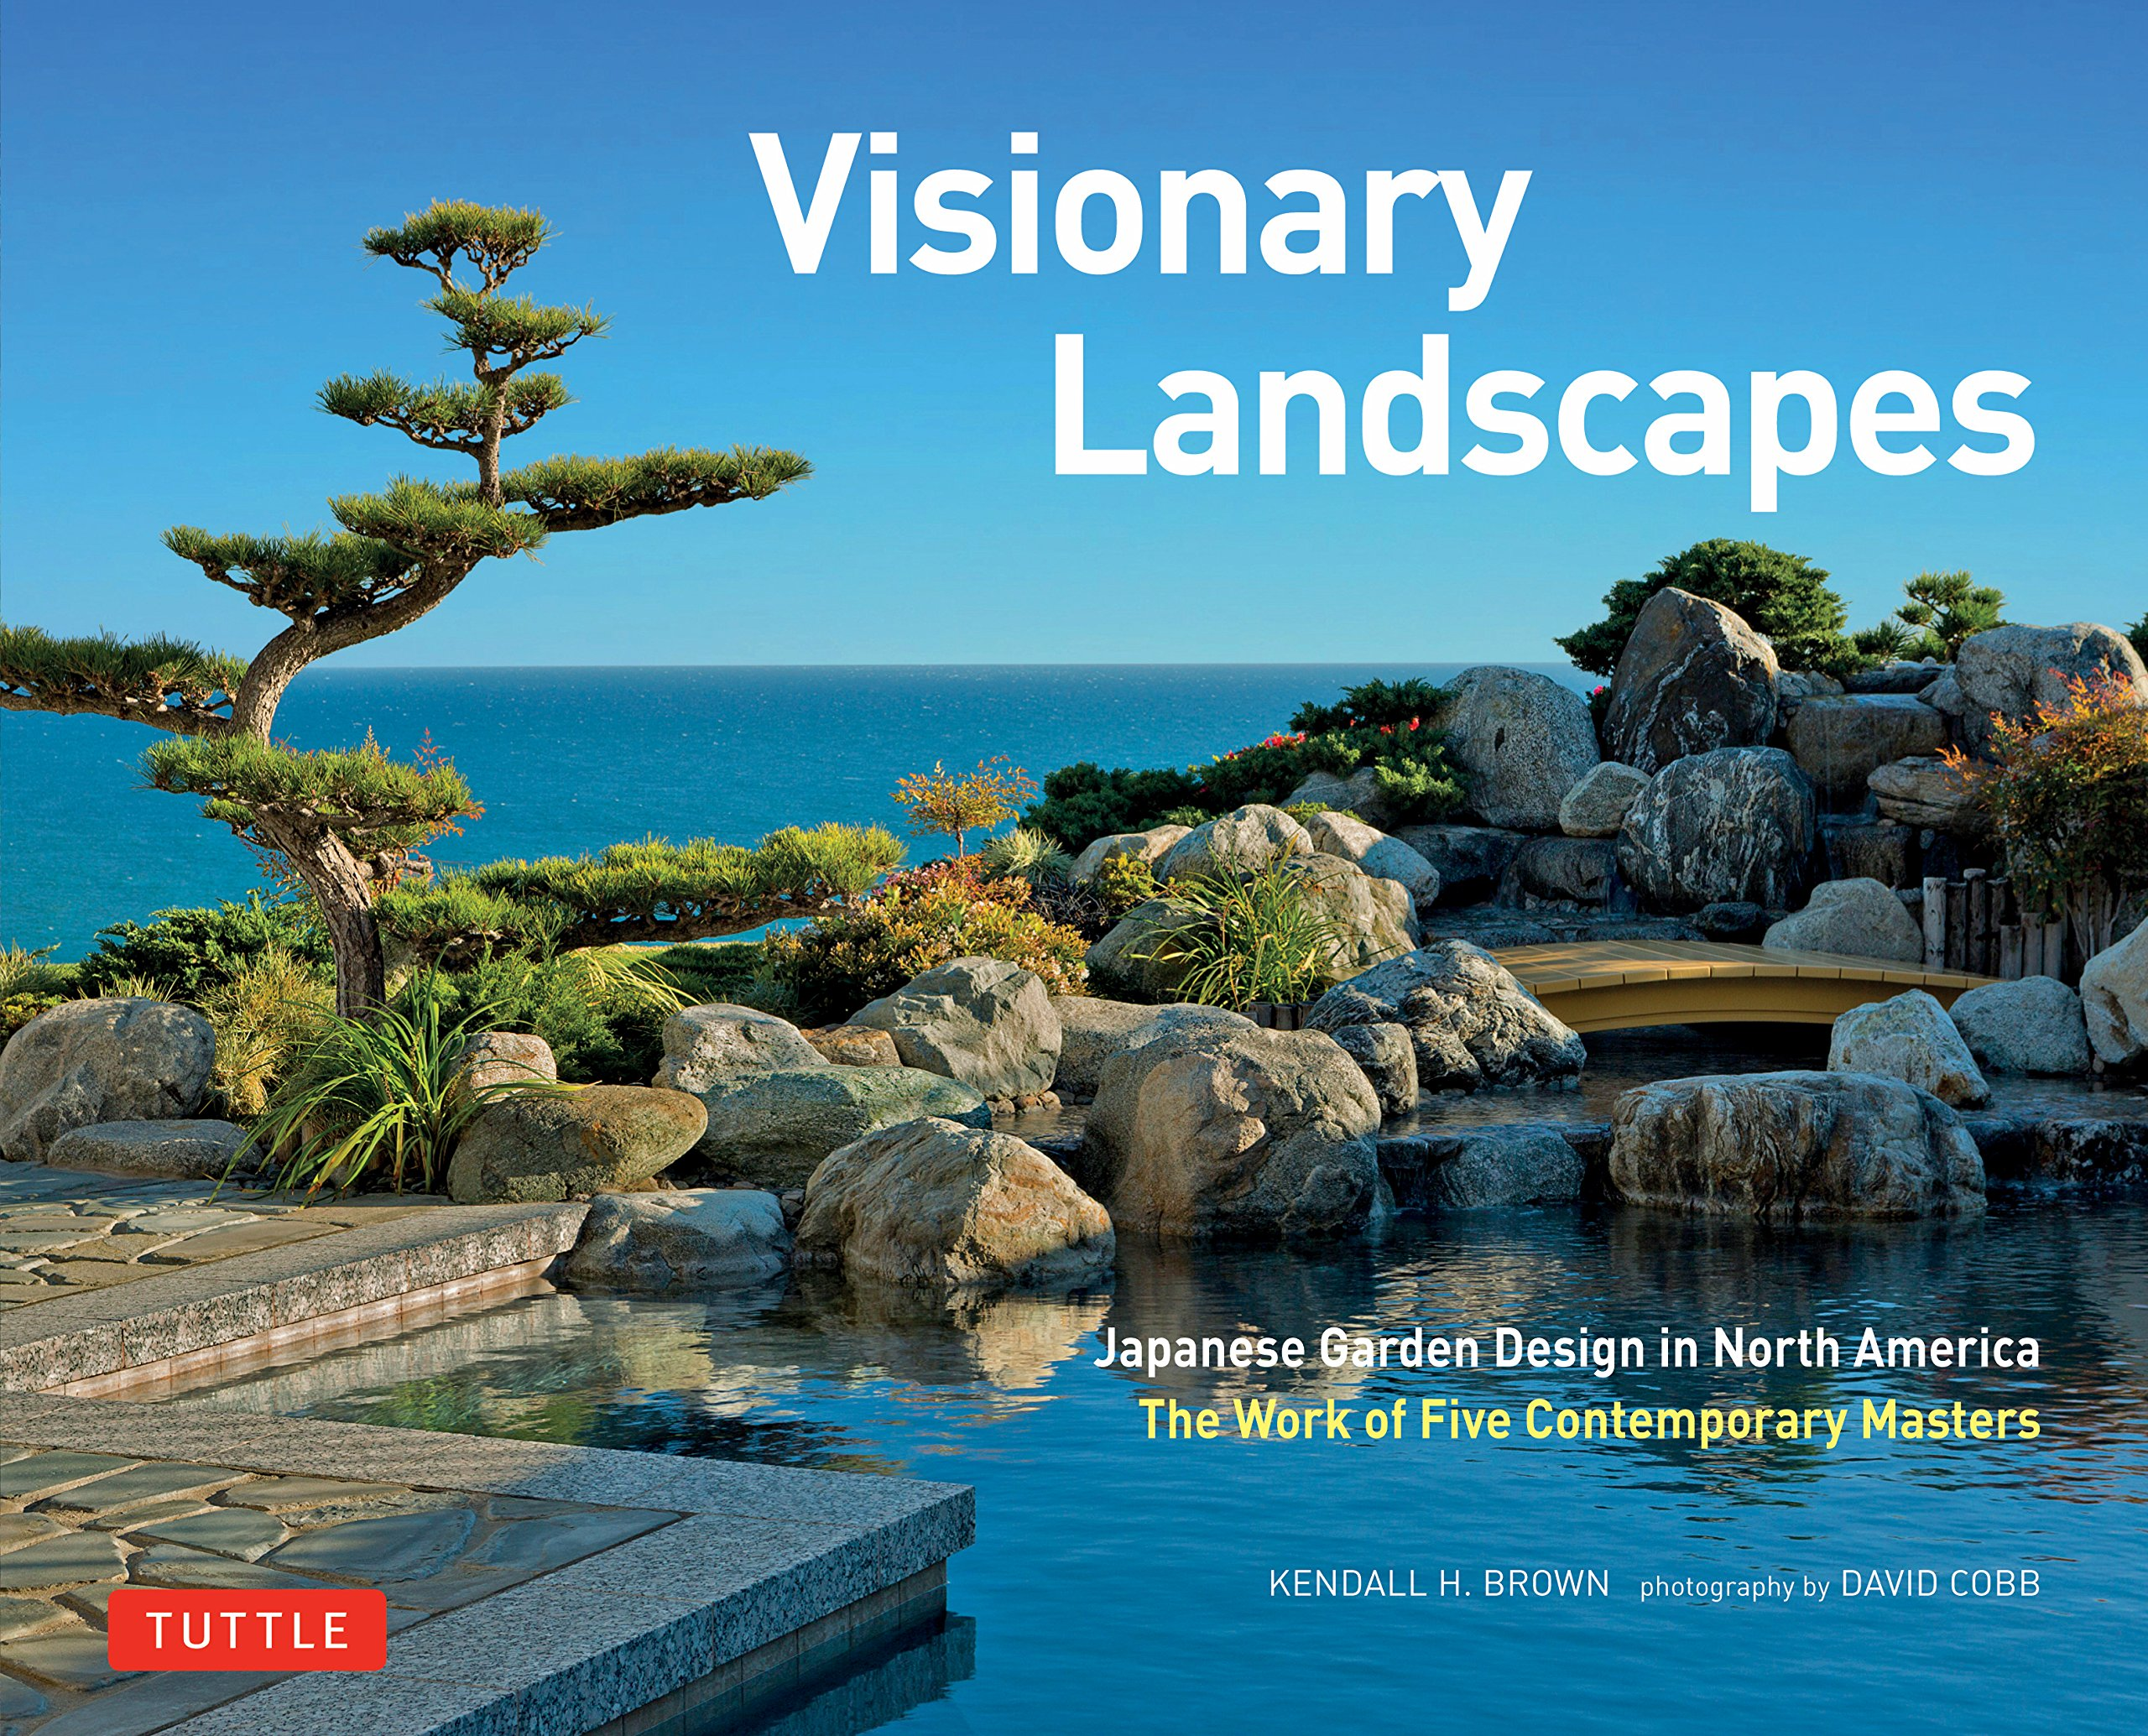 Amazon.com: Visionary Landscapes: Japanese Garden Design in North ...